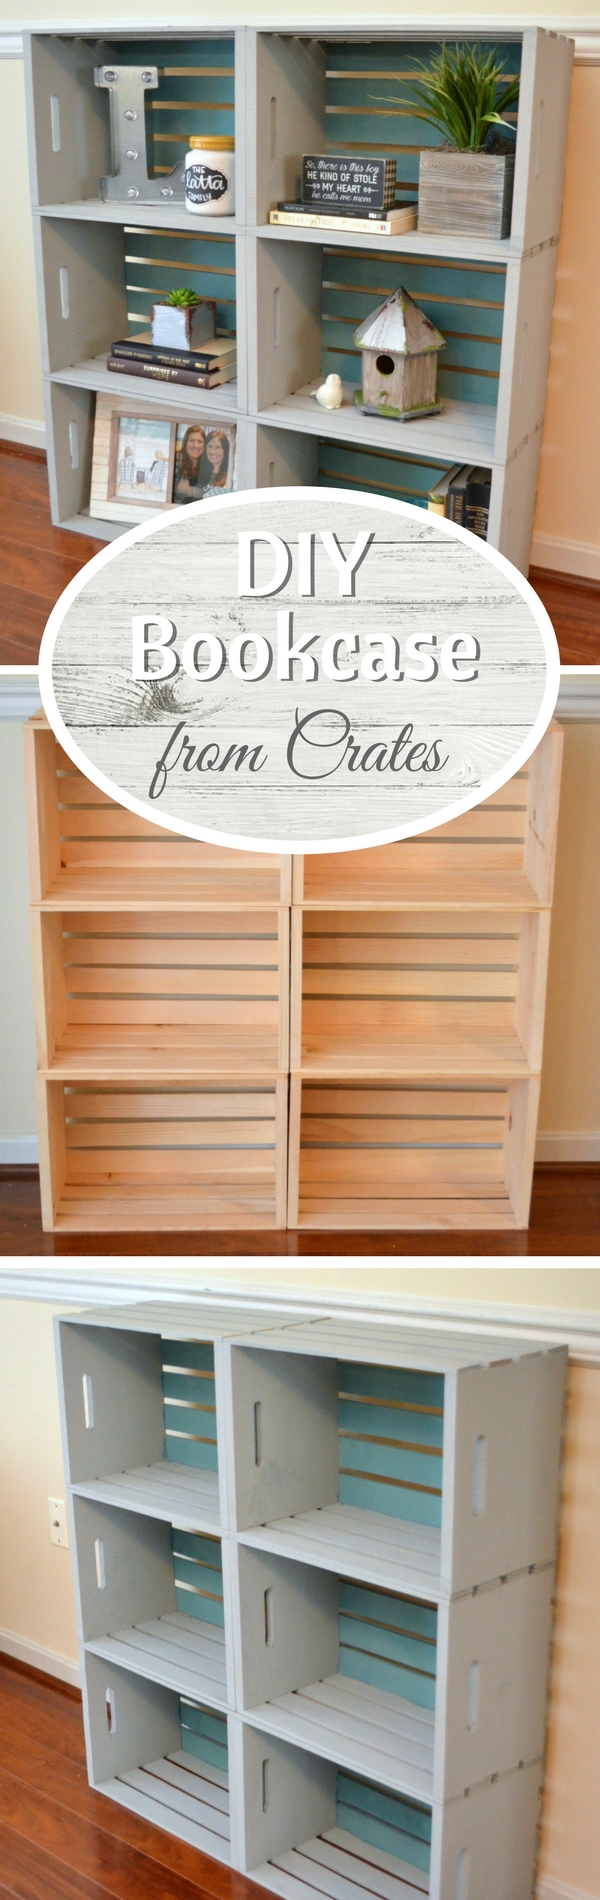 Check out how to build a very easy DIY bookshelf from wooden crates